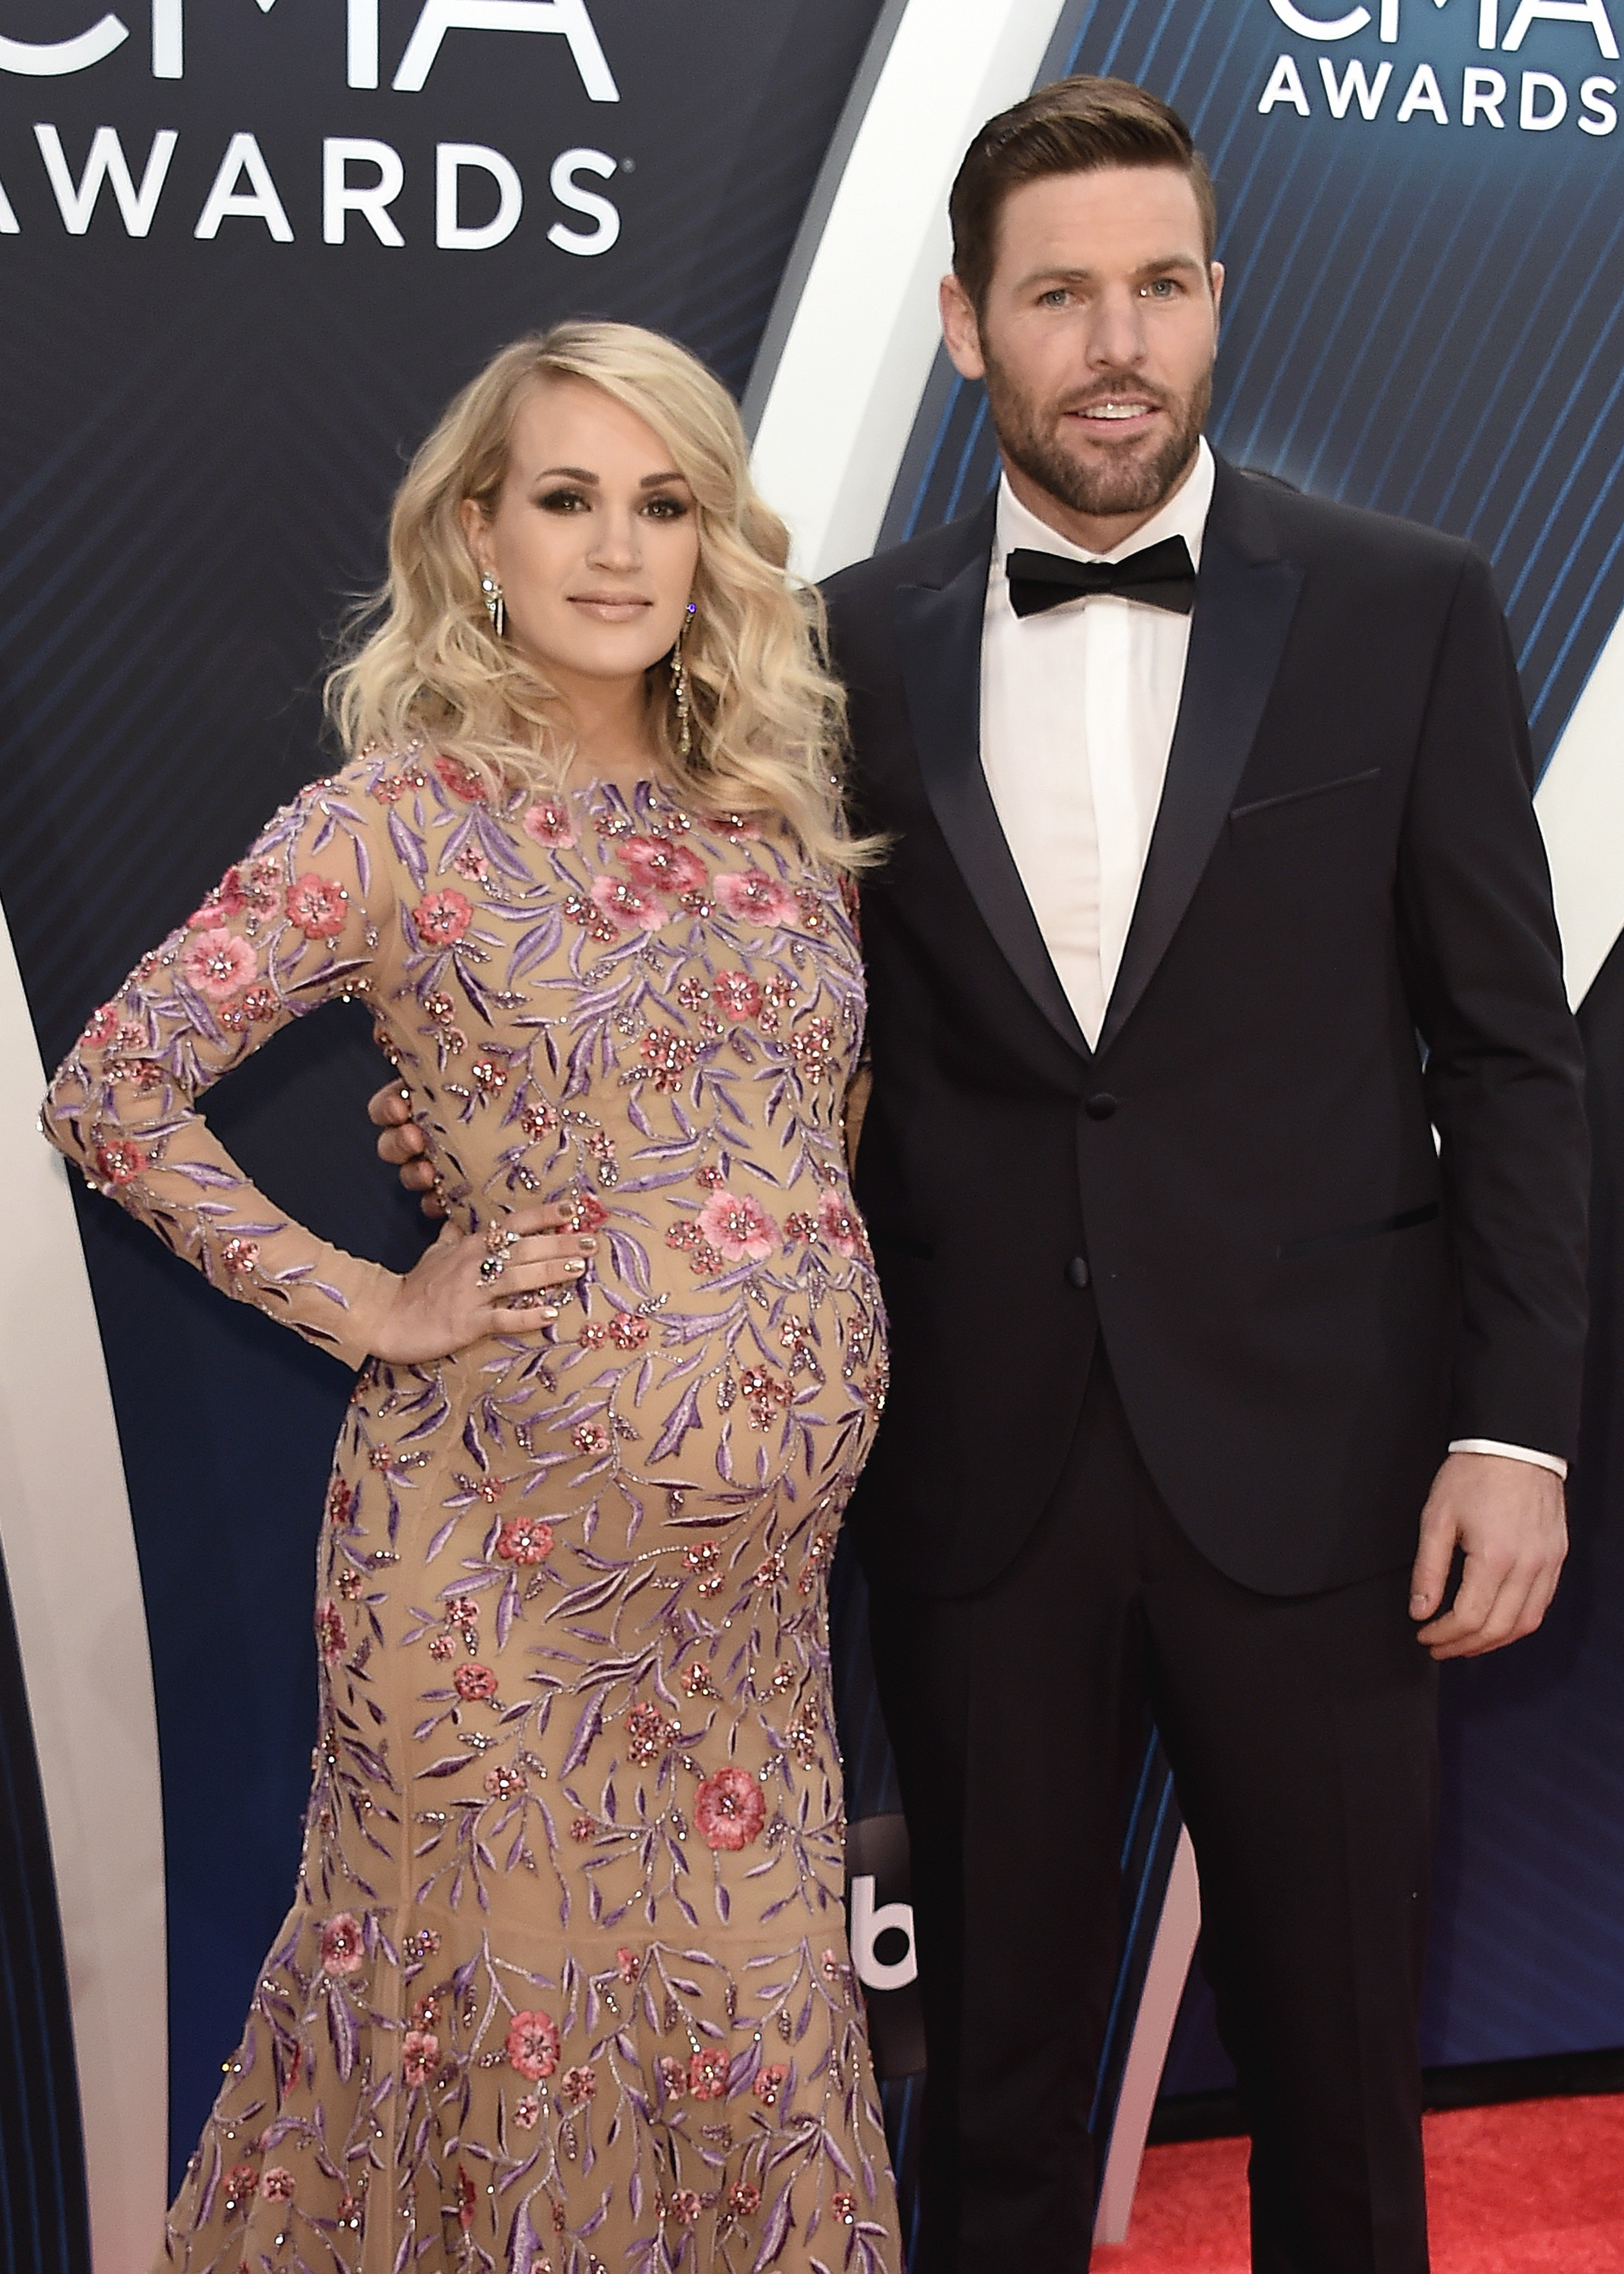 Carrie Underwood and Mike Fisher attend the 52nd Annual Country Music Association Awards in Nashville on Nov. 14, 2018.